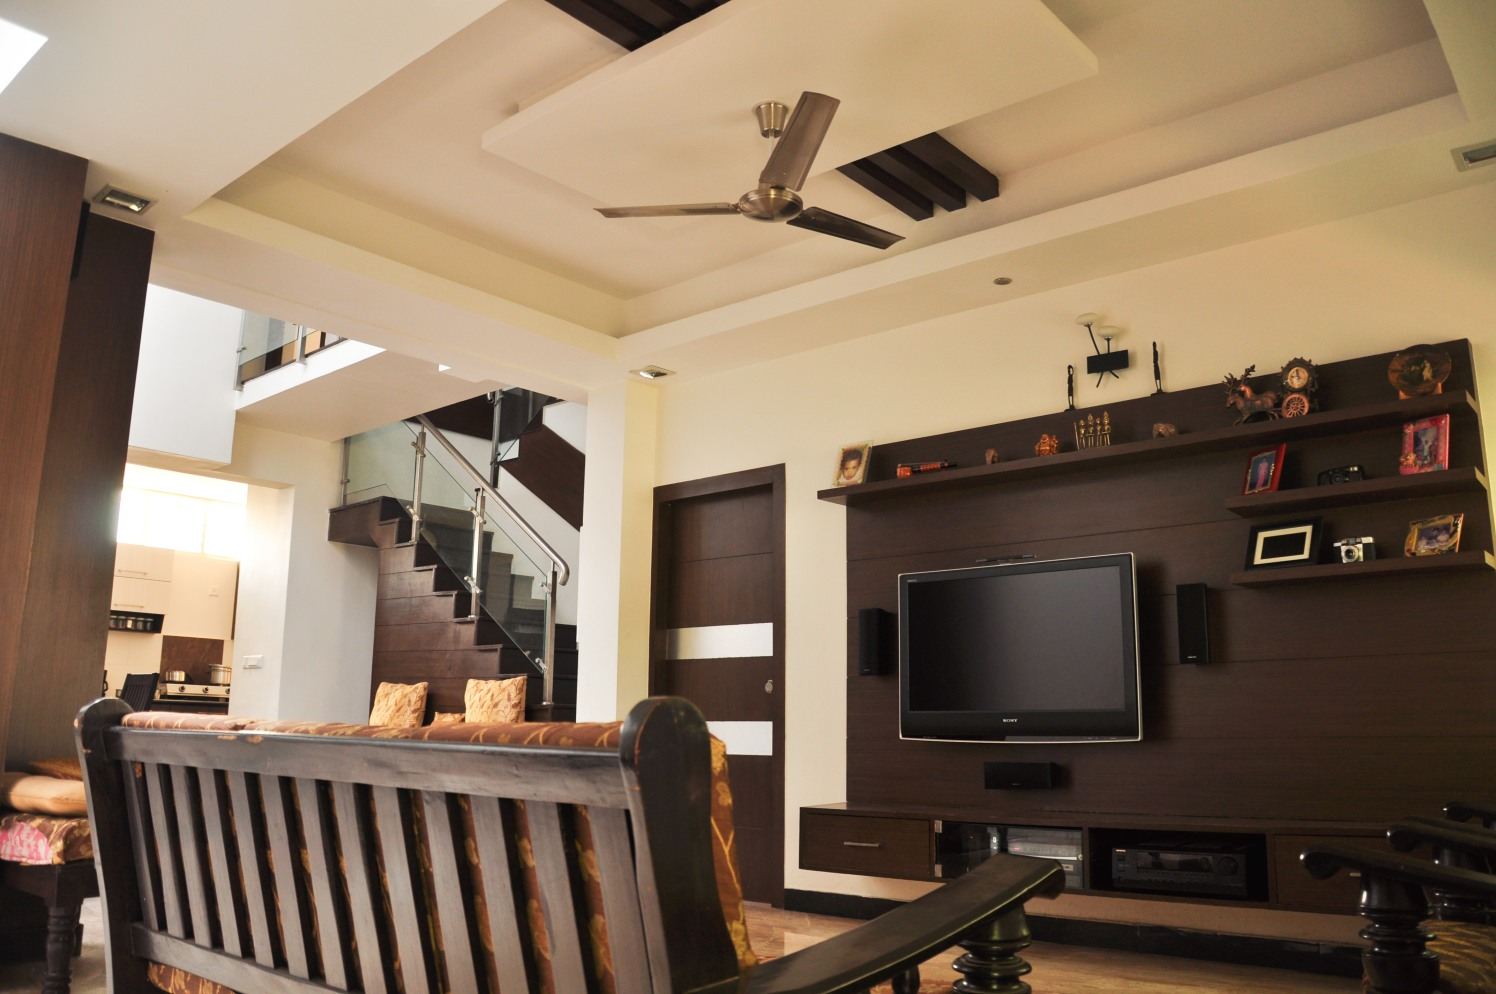 The Wooden Museum by Manasa Bharadwaj Living-room Contemporary | Interior Design Photos & Ideas